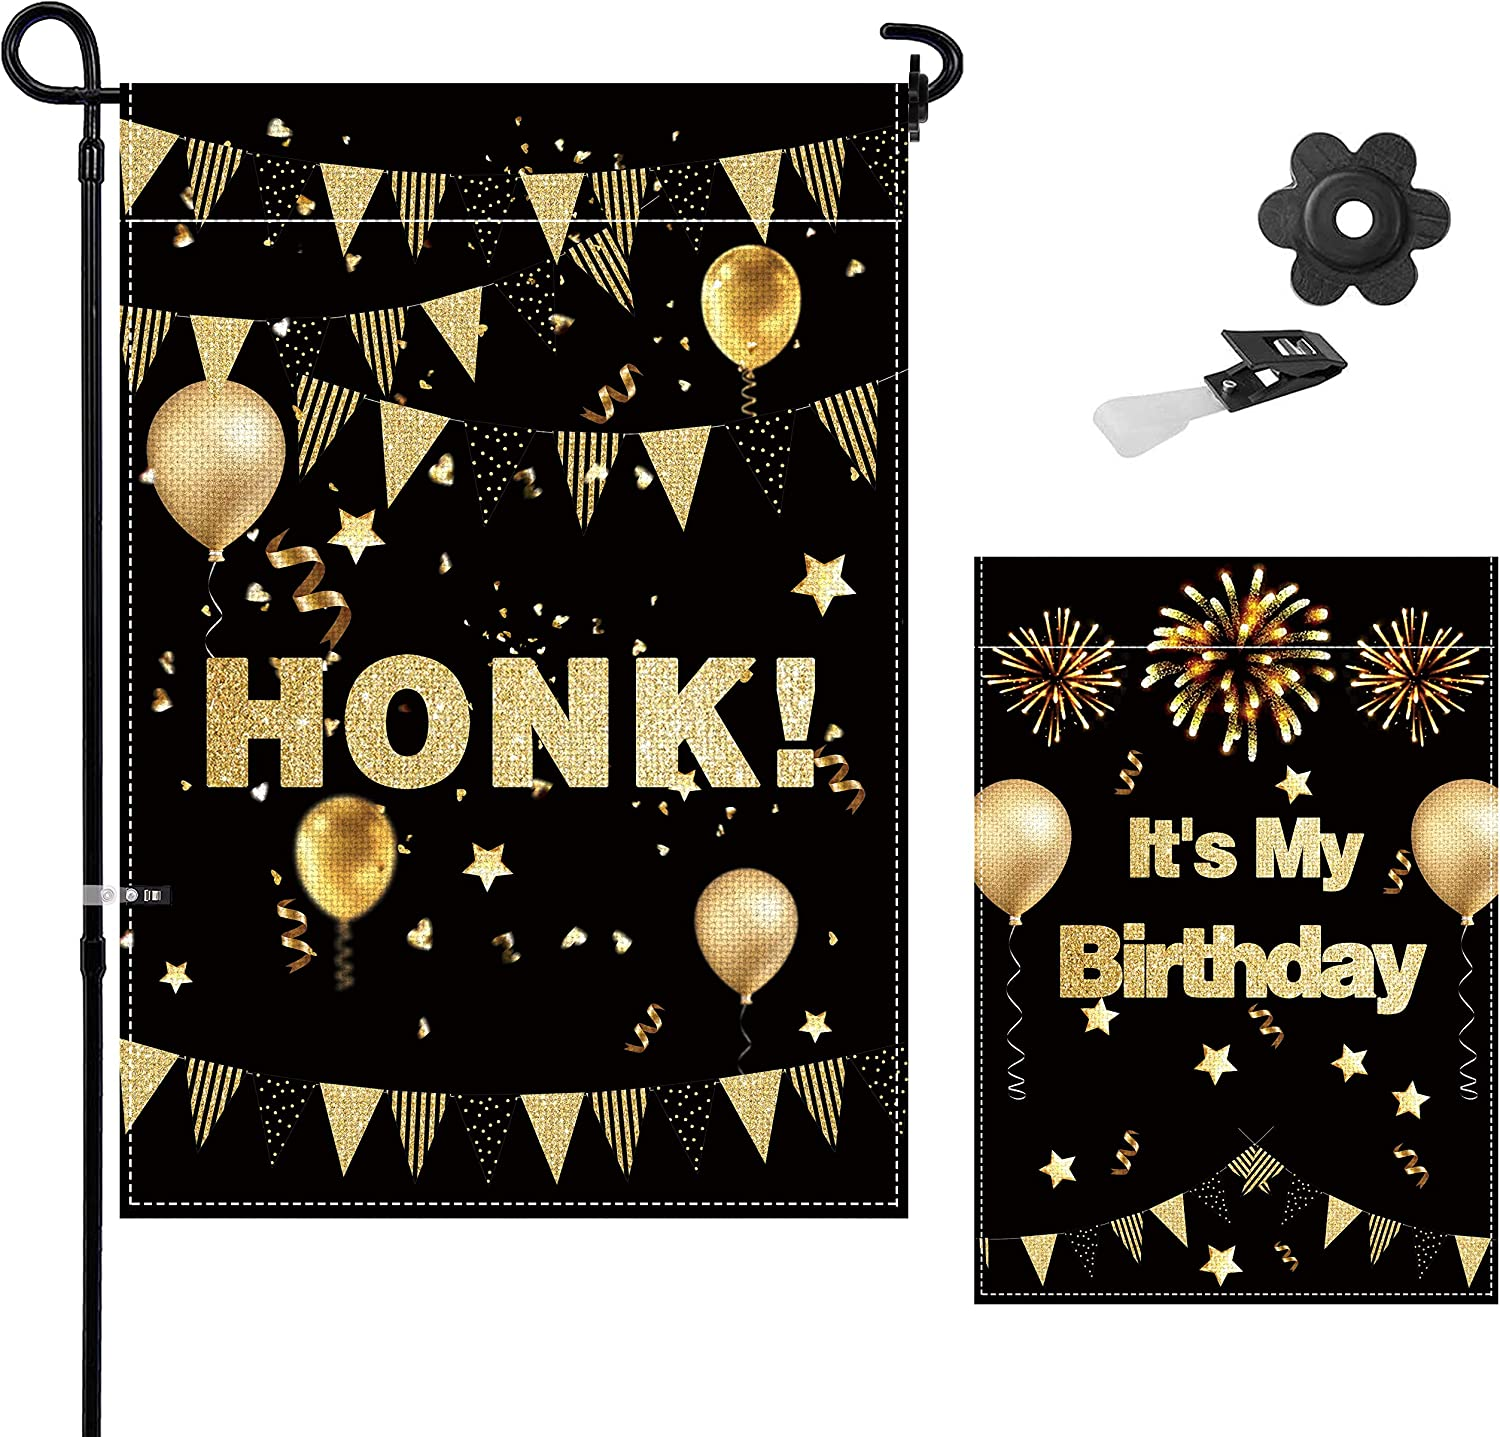 Tuoyi HONK It's My Birthday Garden Flag, 18 x 12.5 inch Double Sided Design for HONK Birthday Party, Outside Yard Sign Banner, Indoor & Outdoor Lawn Decorations